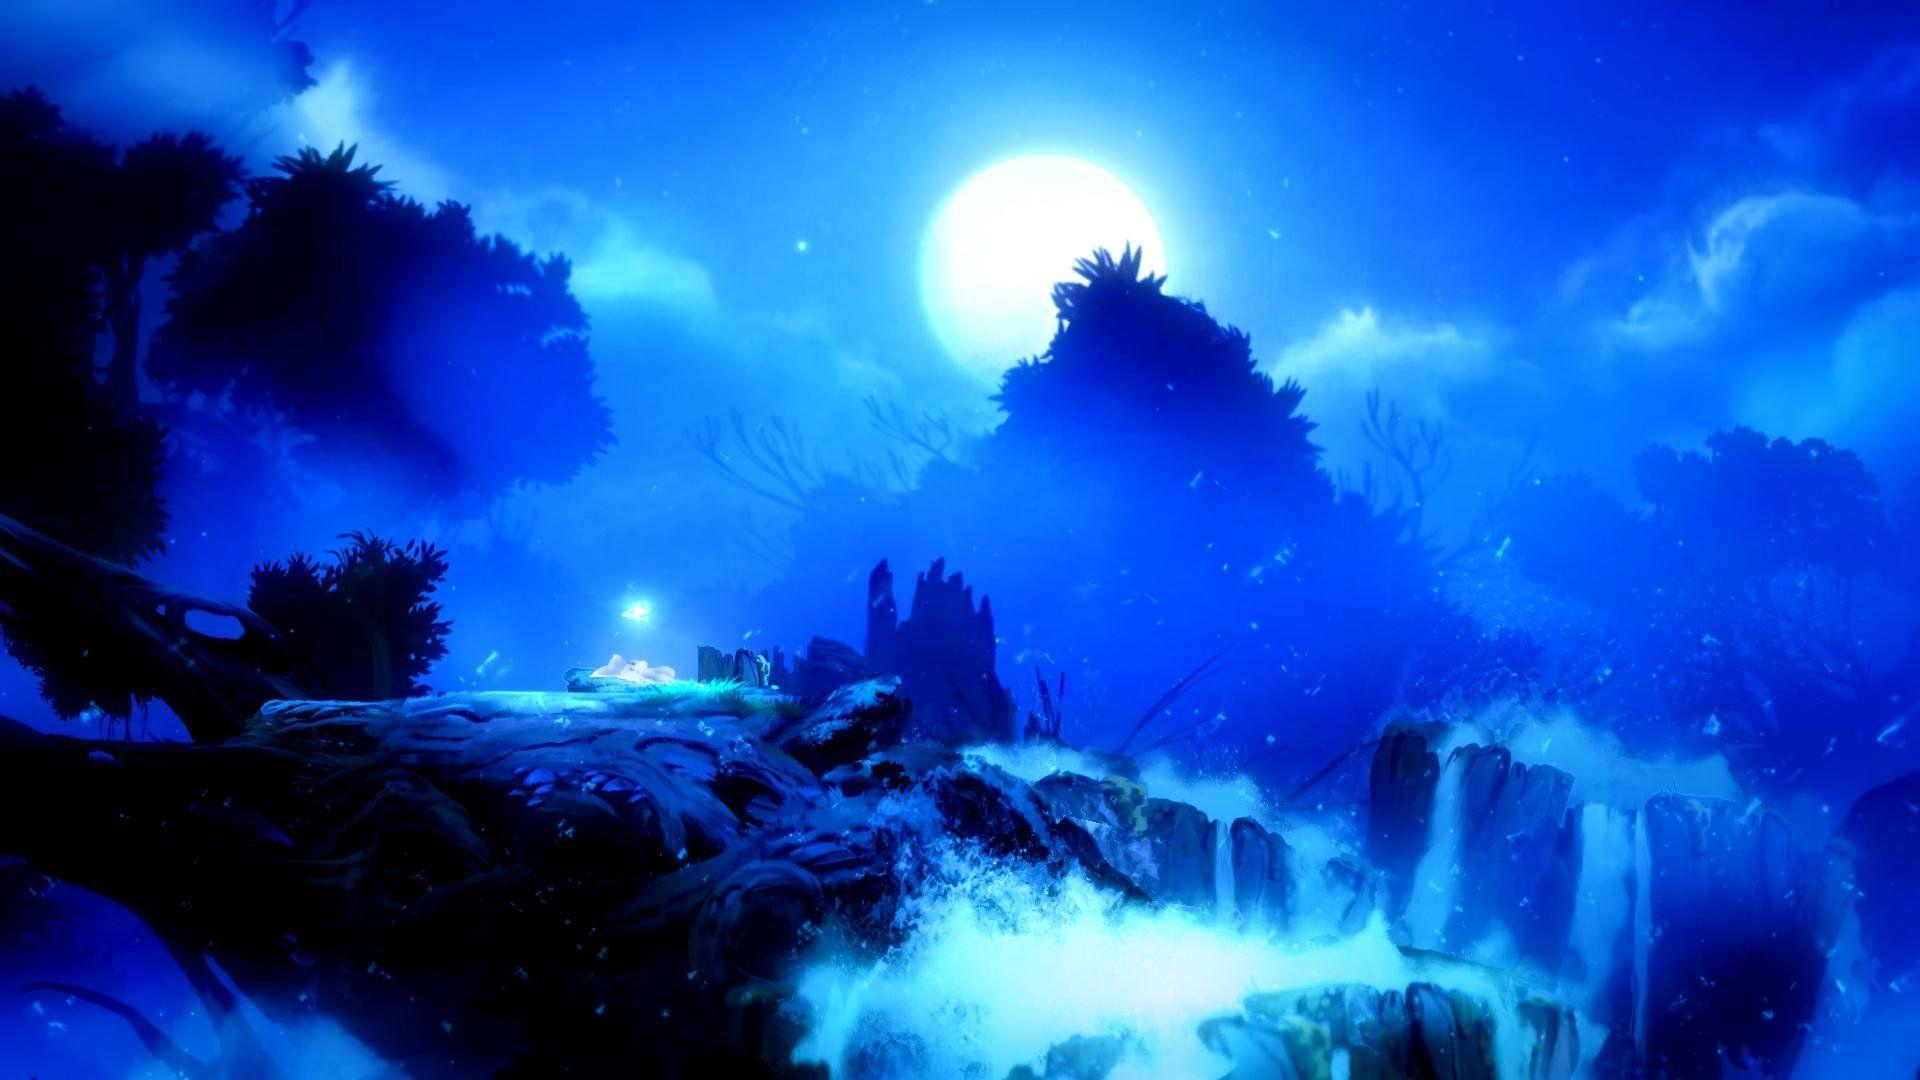 Ori And The Blind Forest Wallpapers - Wallpaper Cave